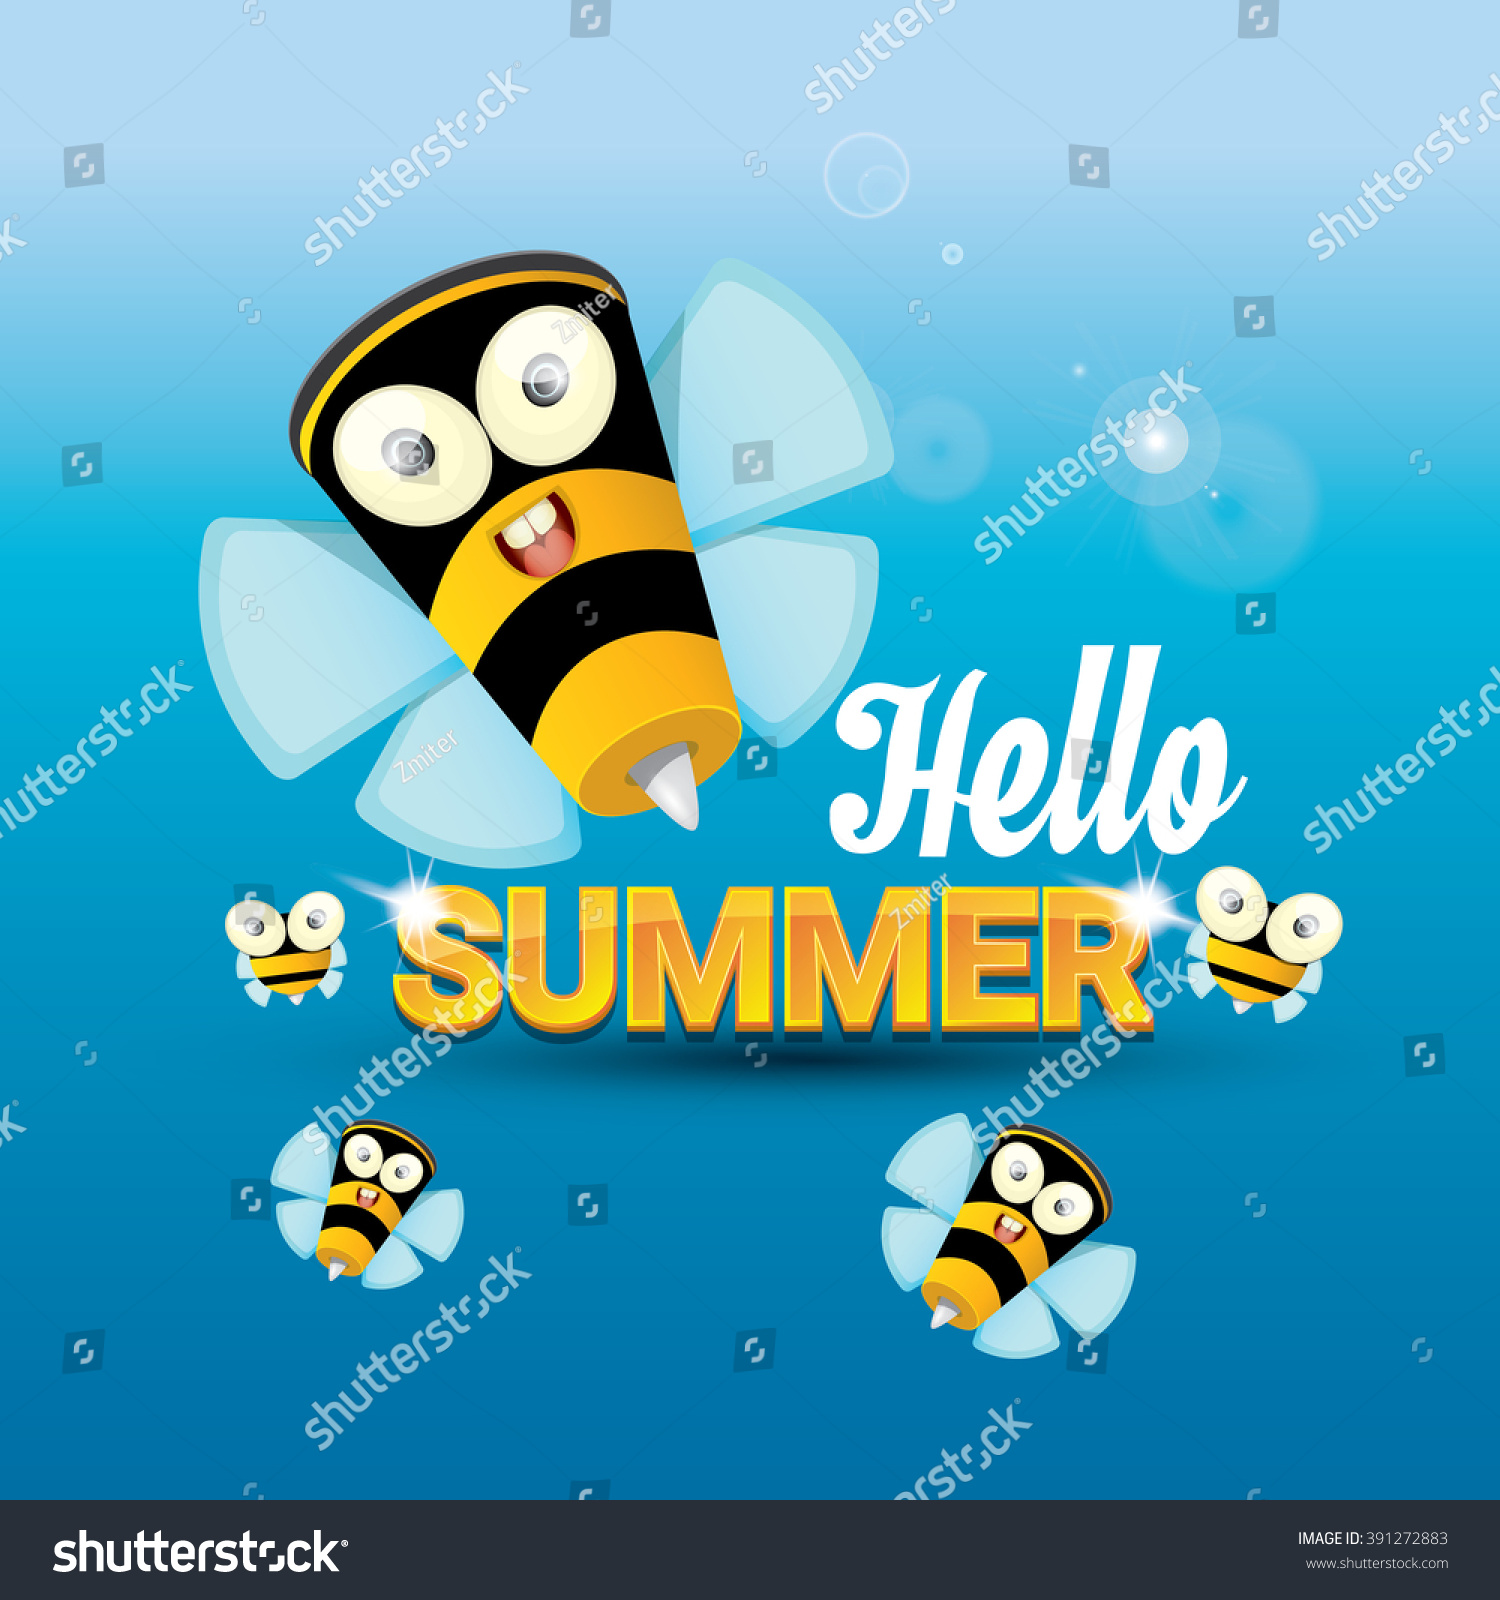 Hello Summer Vector Background With Sunny Sky And Baby Bee Flying. Kids  Background With Funny